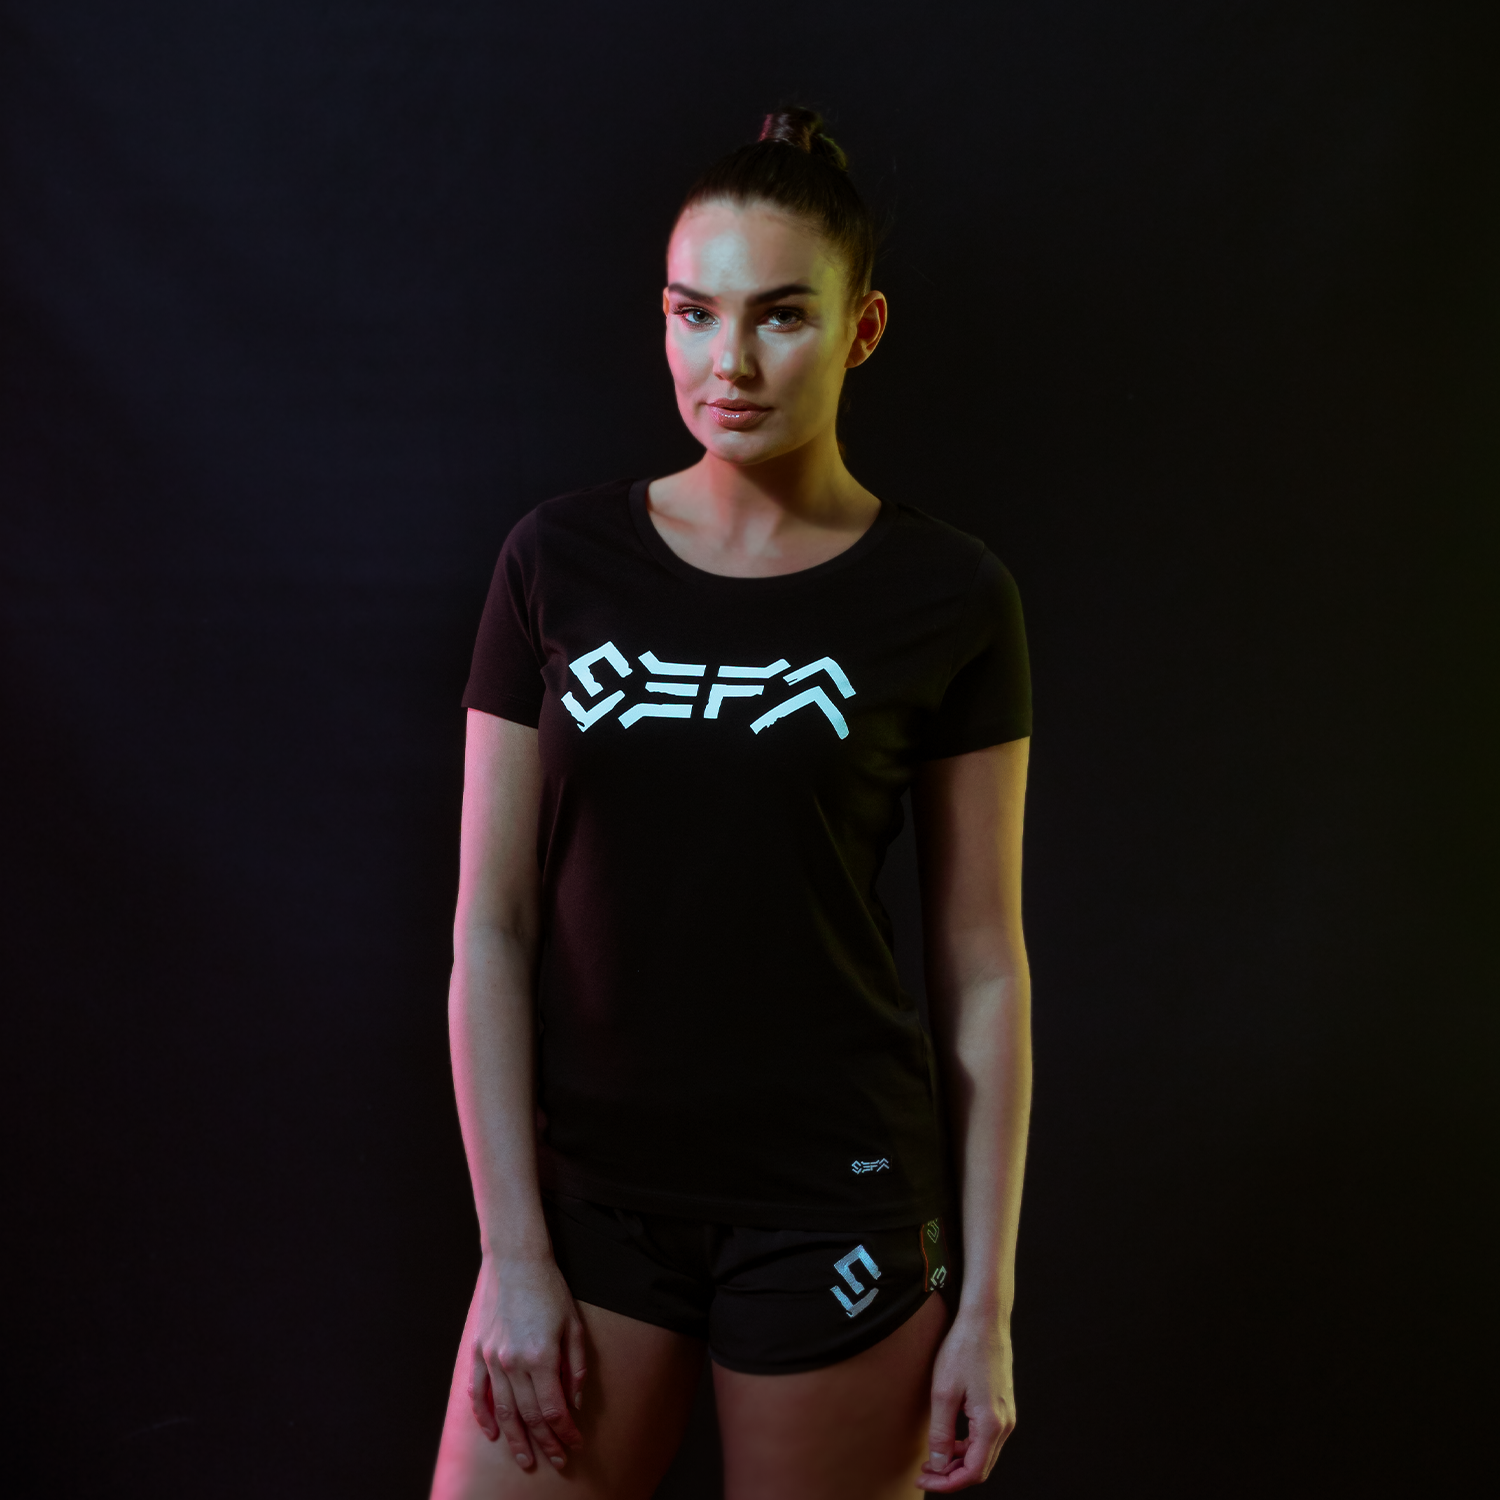 Sefa t-shirt black/white-1